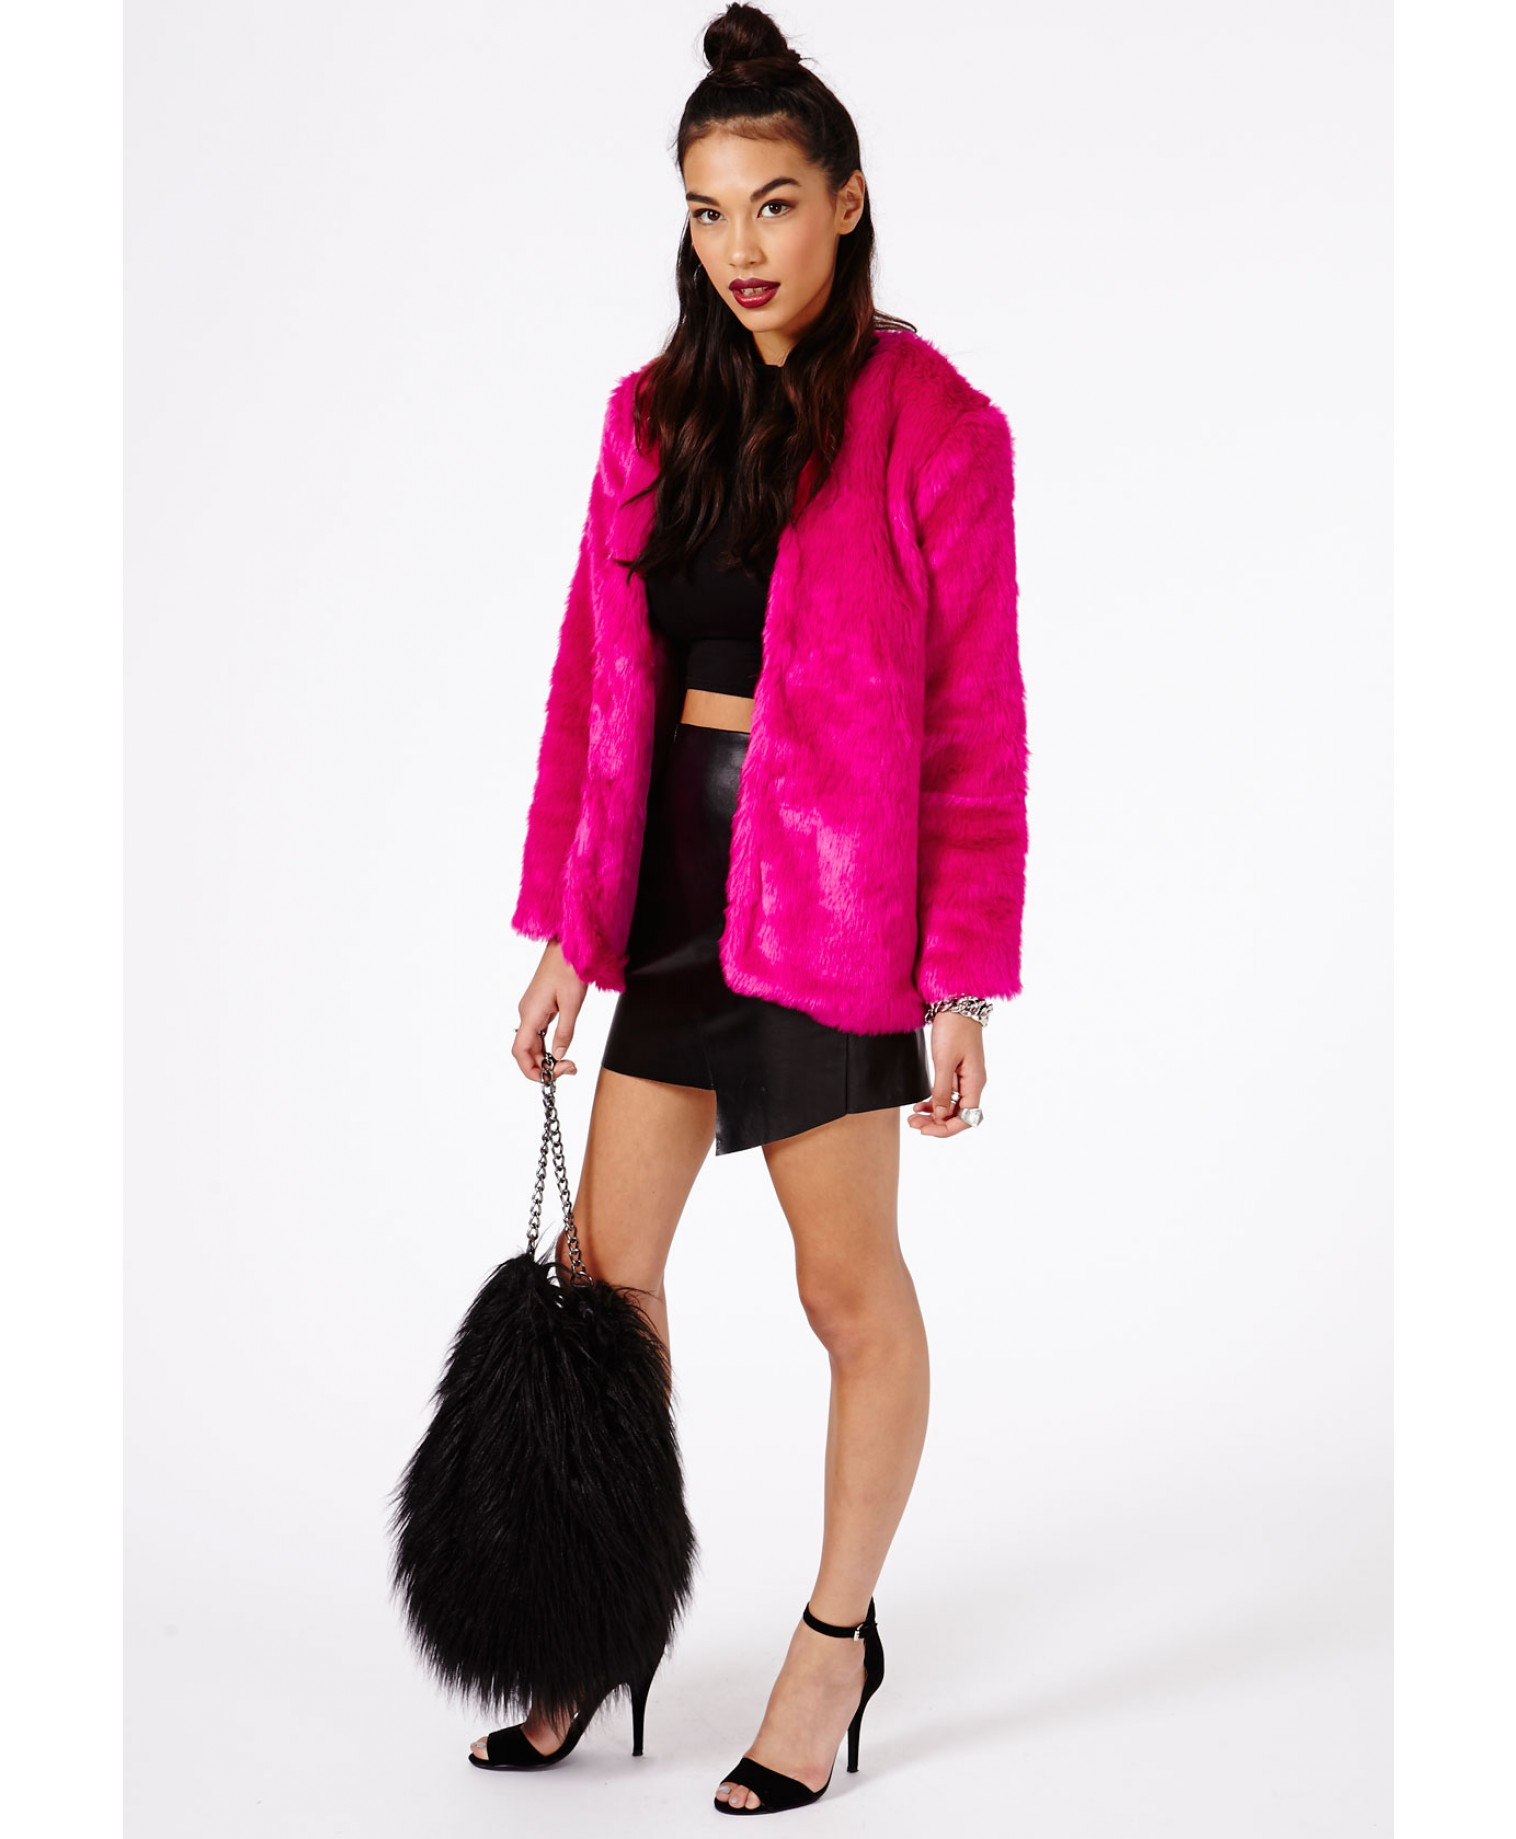 Missguided Magdelena Faux Fur Coat in Pink | Lyst